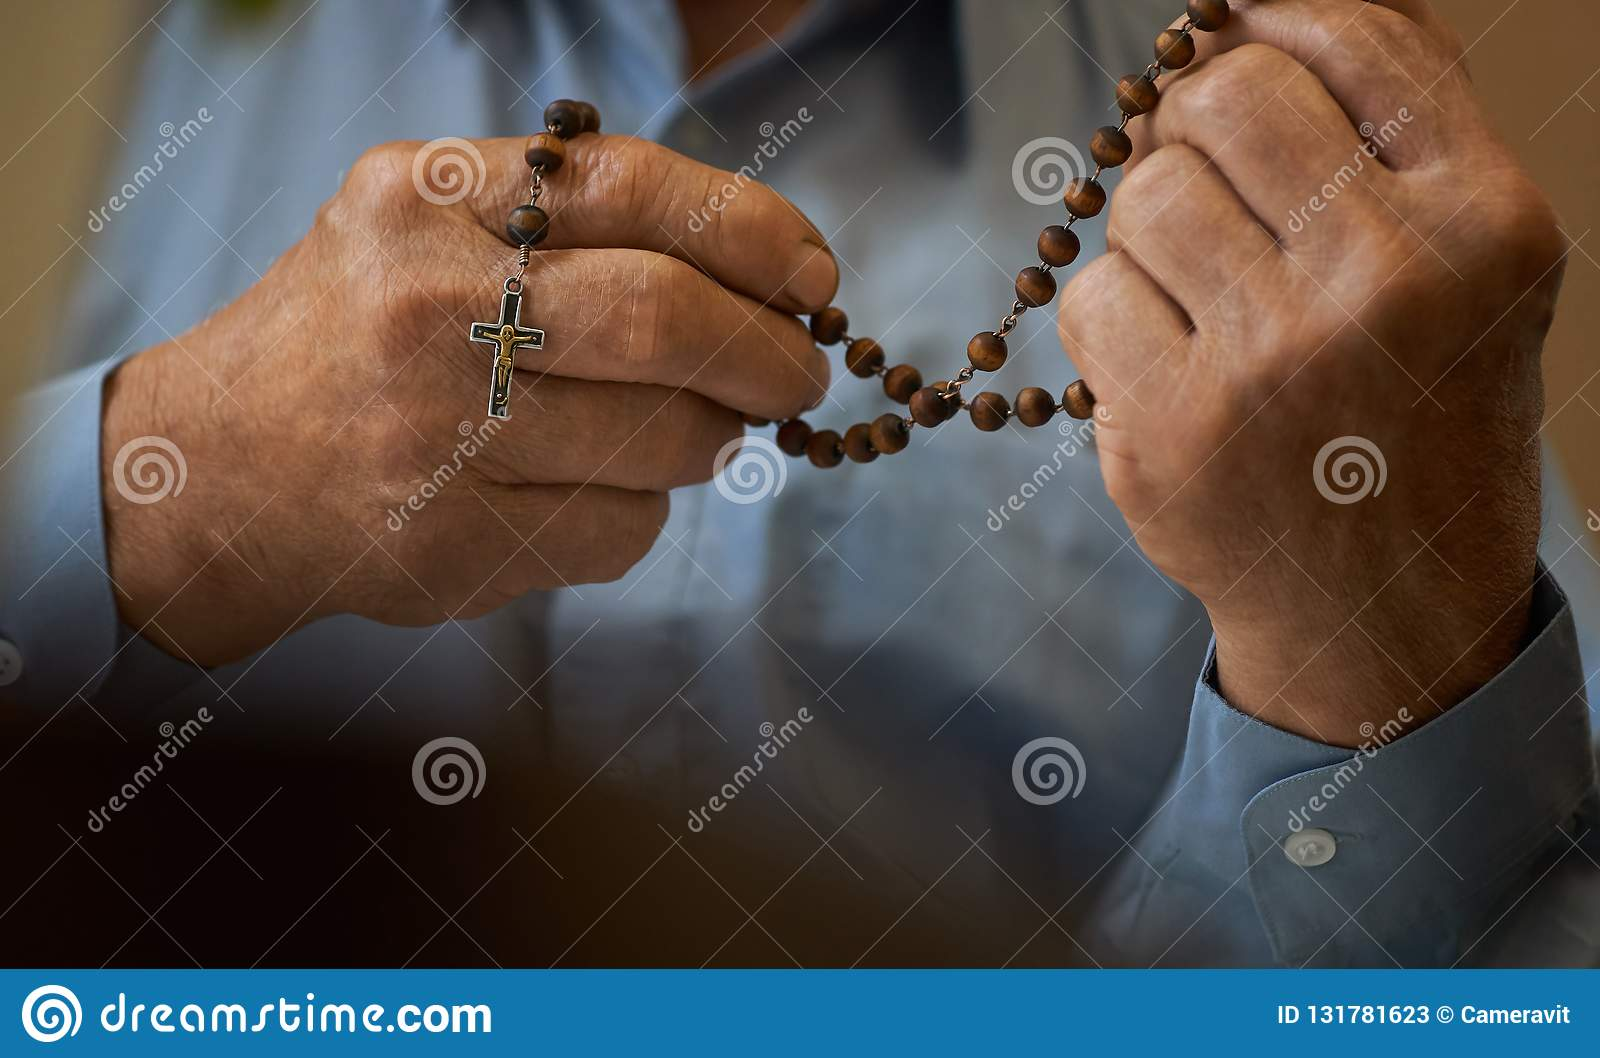 283031947 Royalty-Free Stock Photo. Praying hands of an old man holding rosary beads.